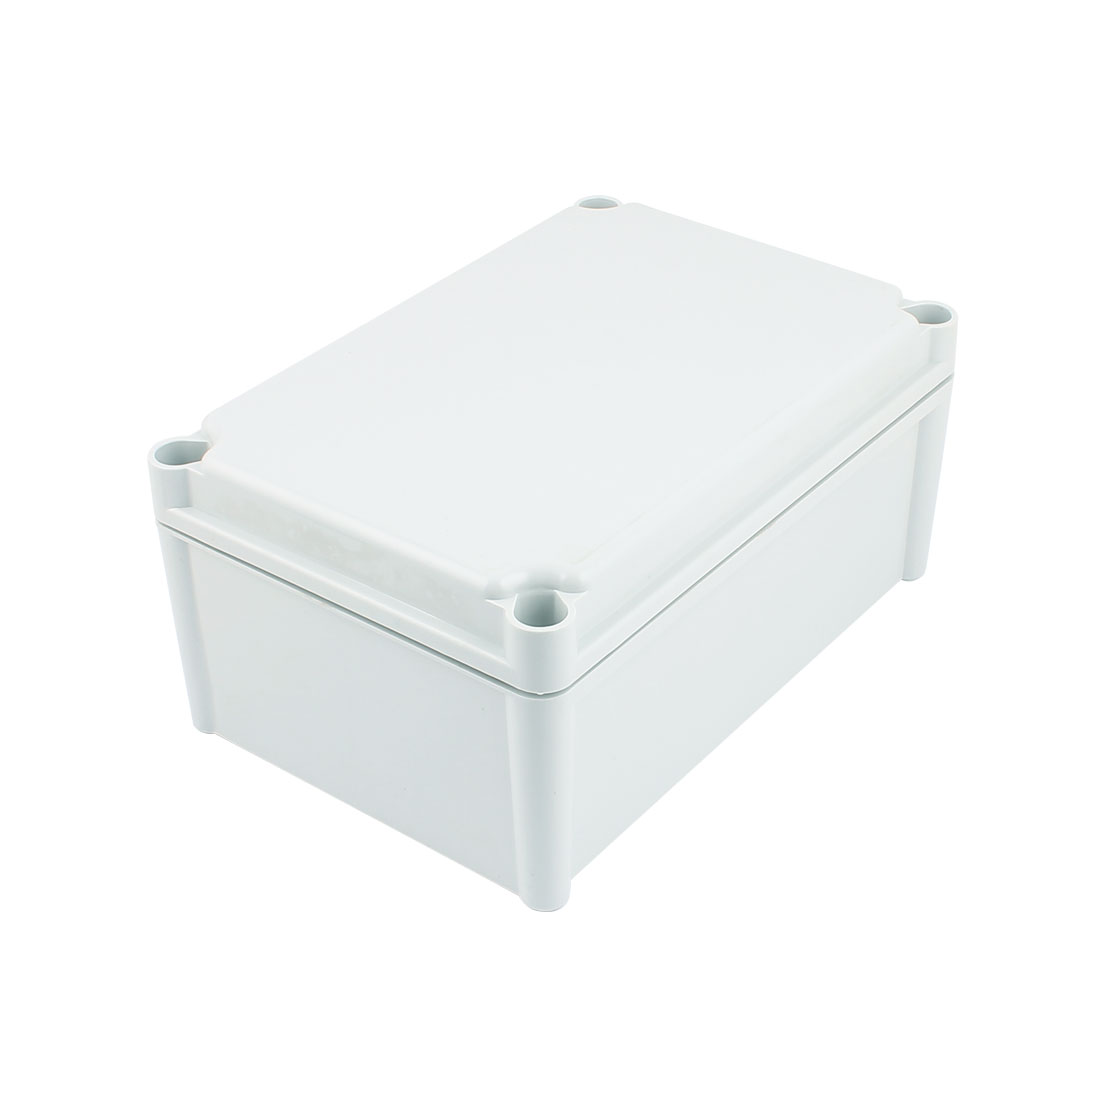 Dustproof IP65 Junction Box DIY Terminal Connection Enclosure Adaptable 262mm x168mm x 122mm